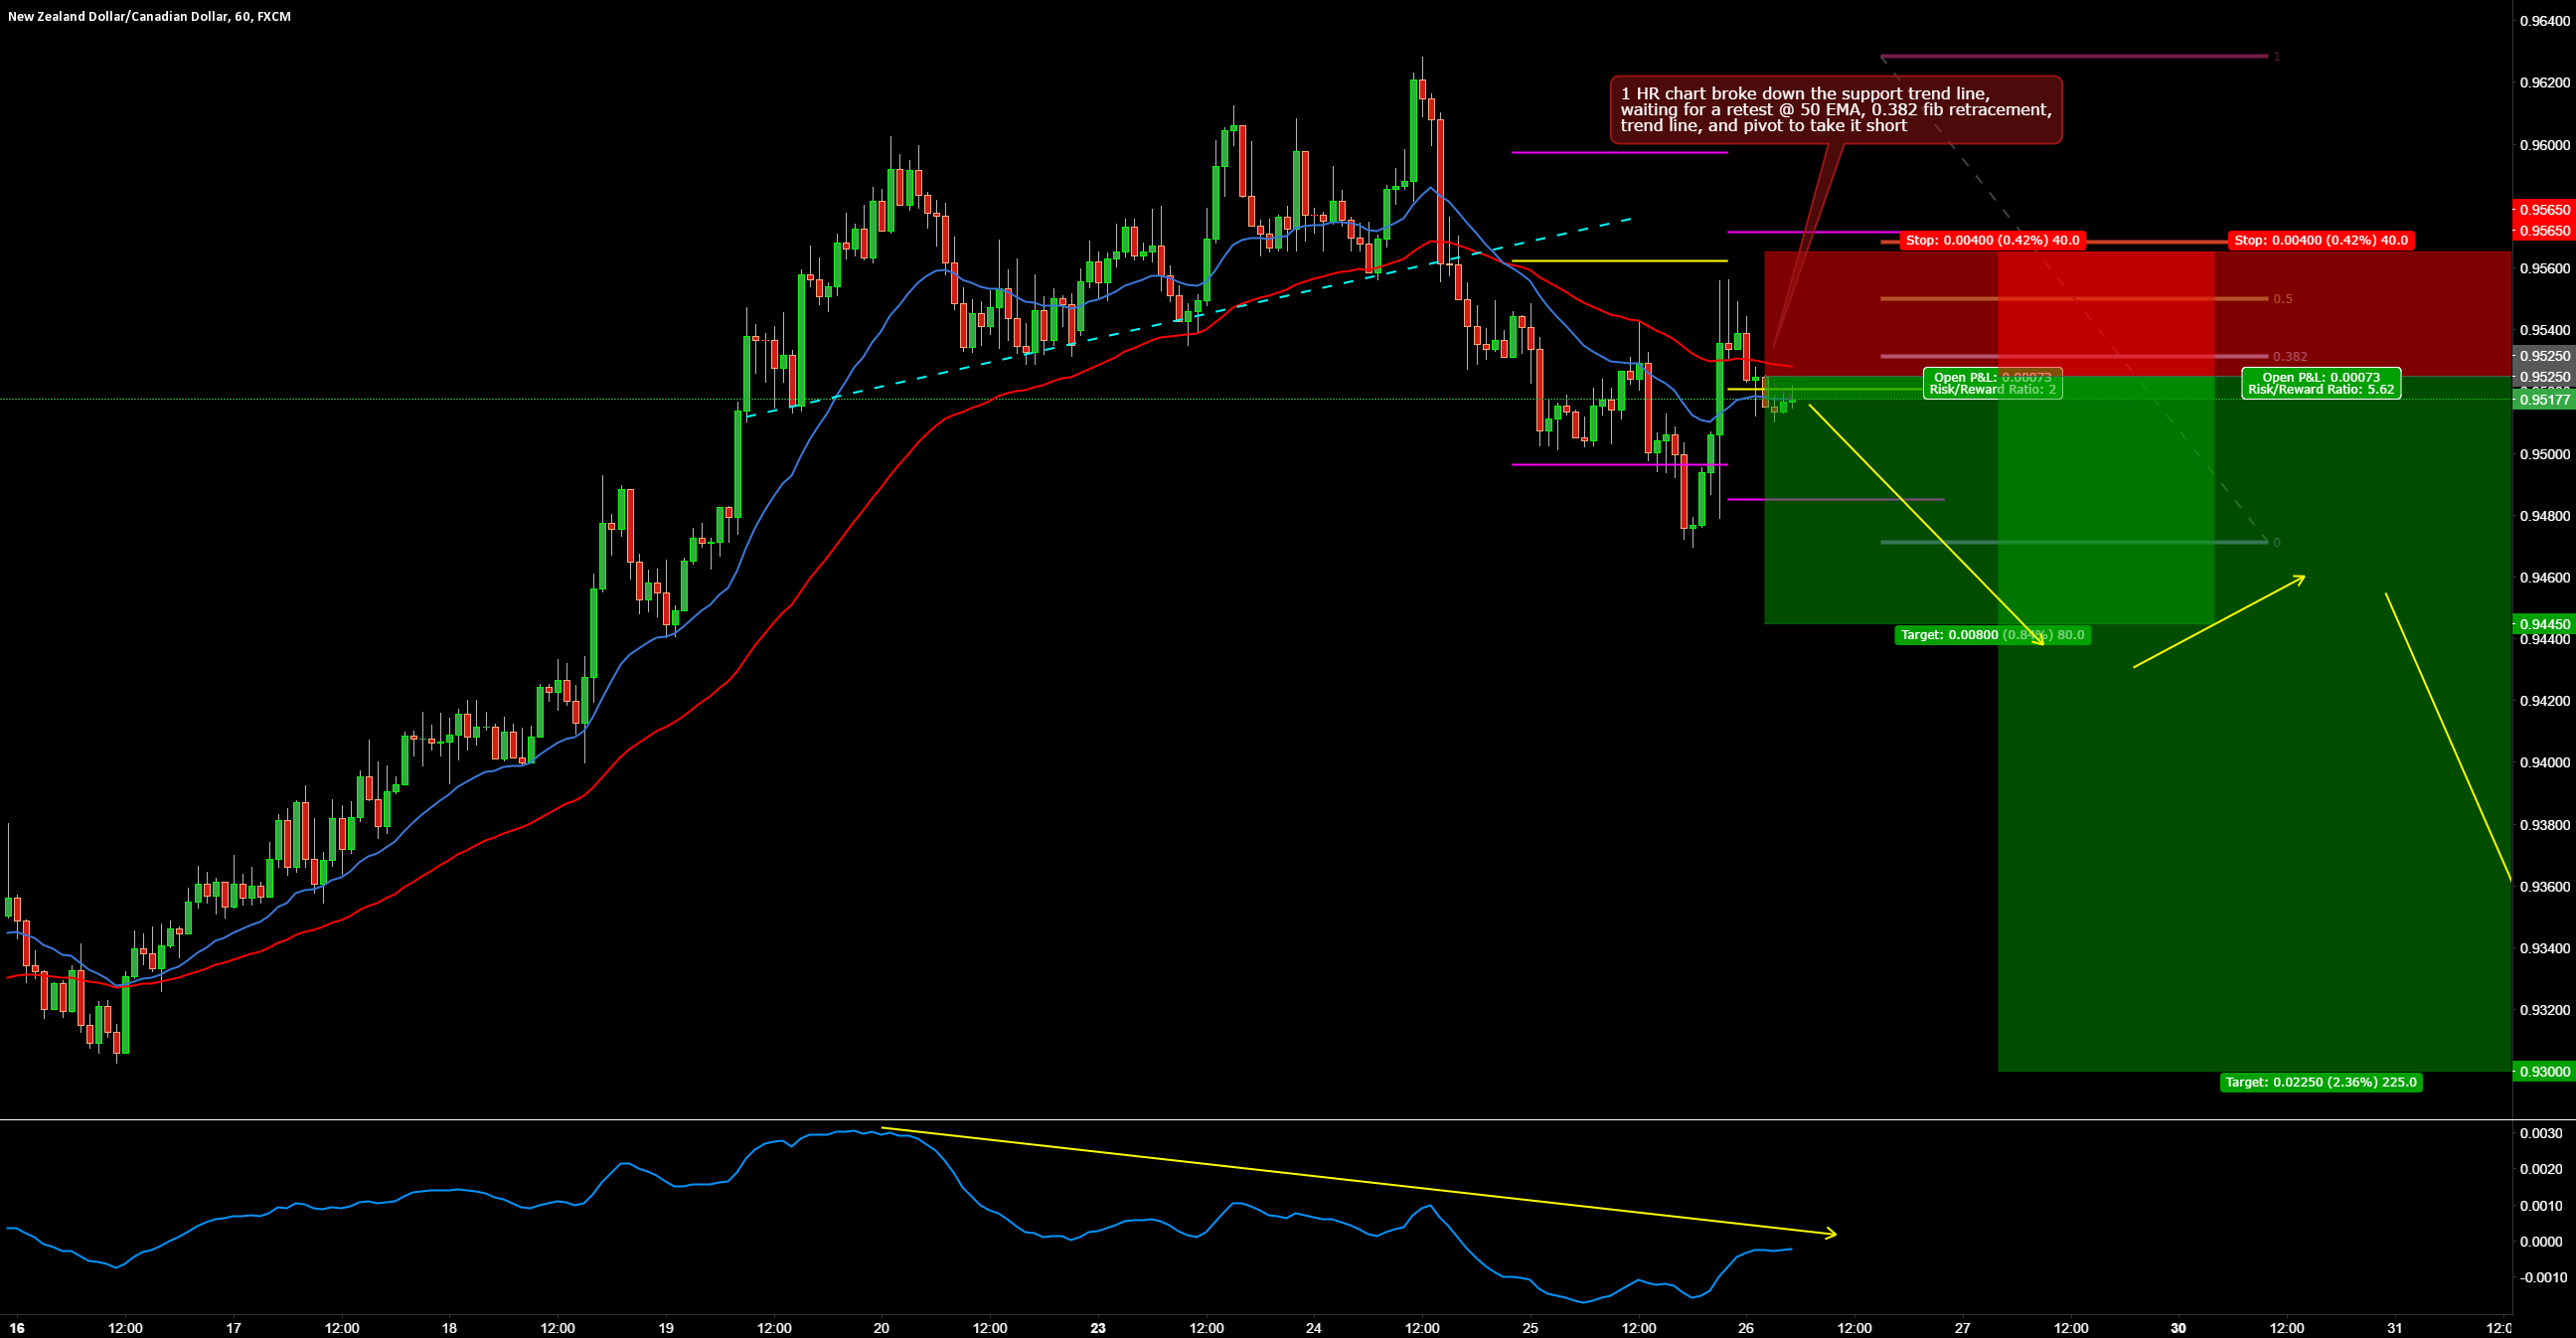 NZDCAD SHORT 1 HR BREAK AND RETEST TRADE SETUP